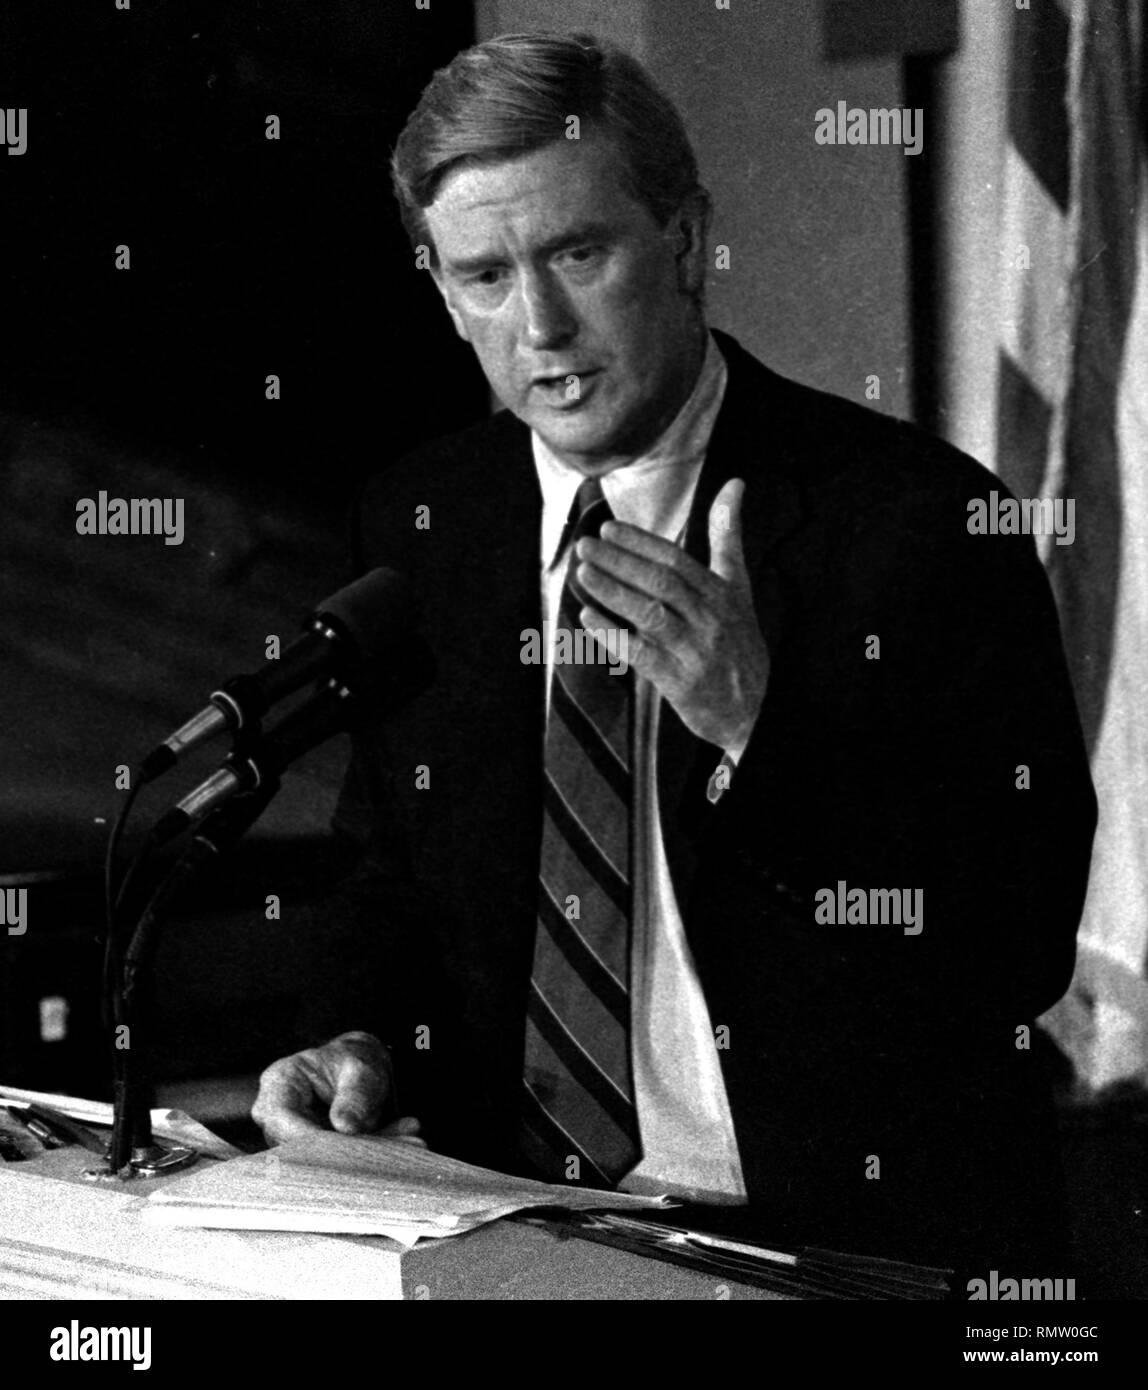 Former Massachusetts Governor Bill Weld announced he will run against President Donald Trump for the Republican Presidential nomination in 2020. Weld in this image was photographed during a Massachusetts gubernatorial debate in Boston Ma USA photo by Bill Belknap 1995 Stock Photo